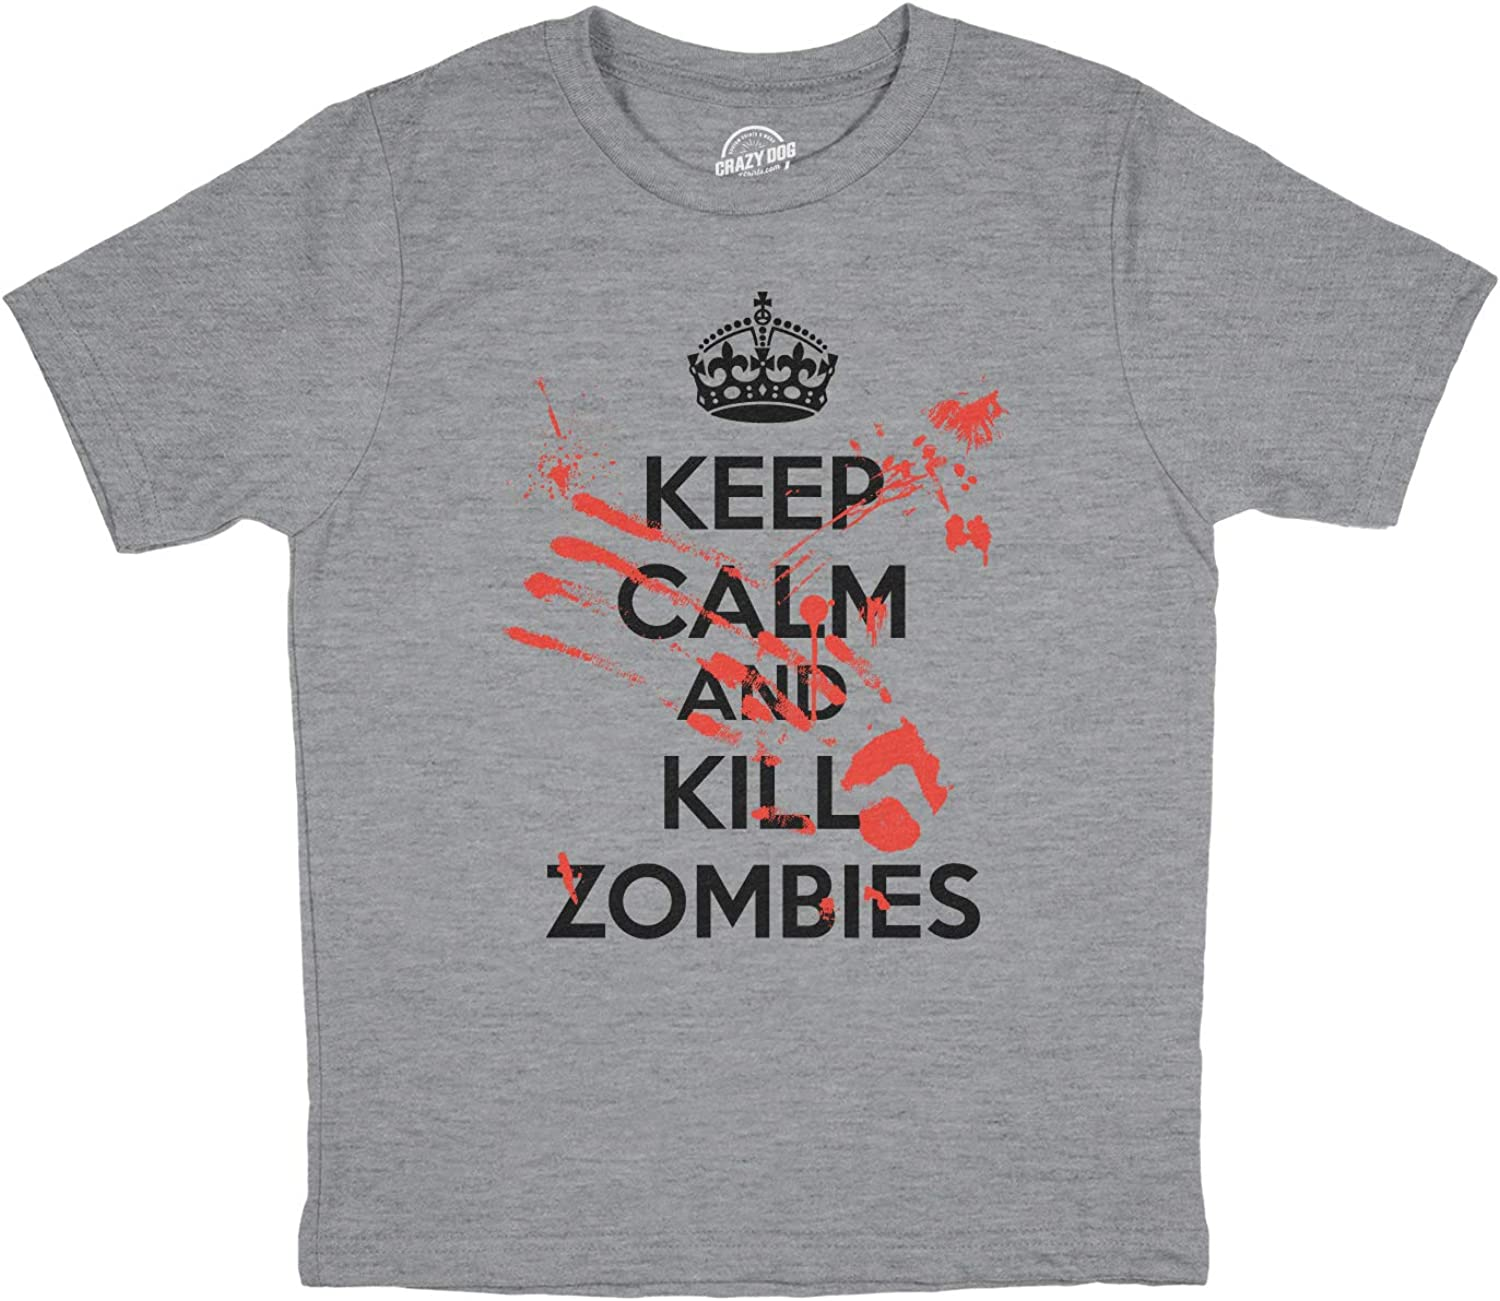 Funny Halloween T-Shirt for Kids Youth Keep Calm and Kill Zombies Shirt